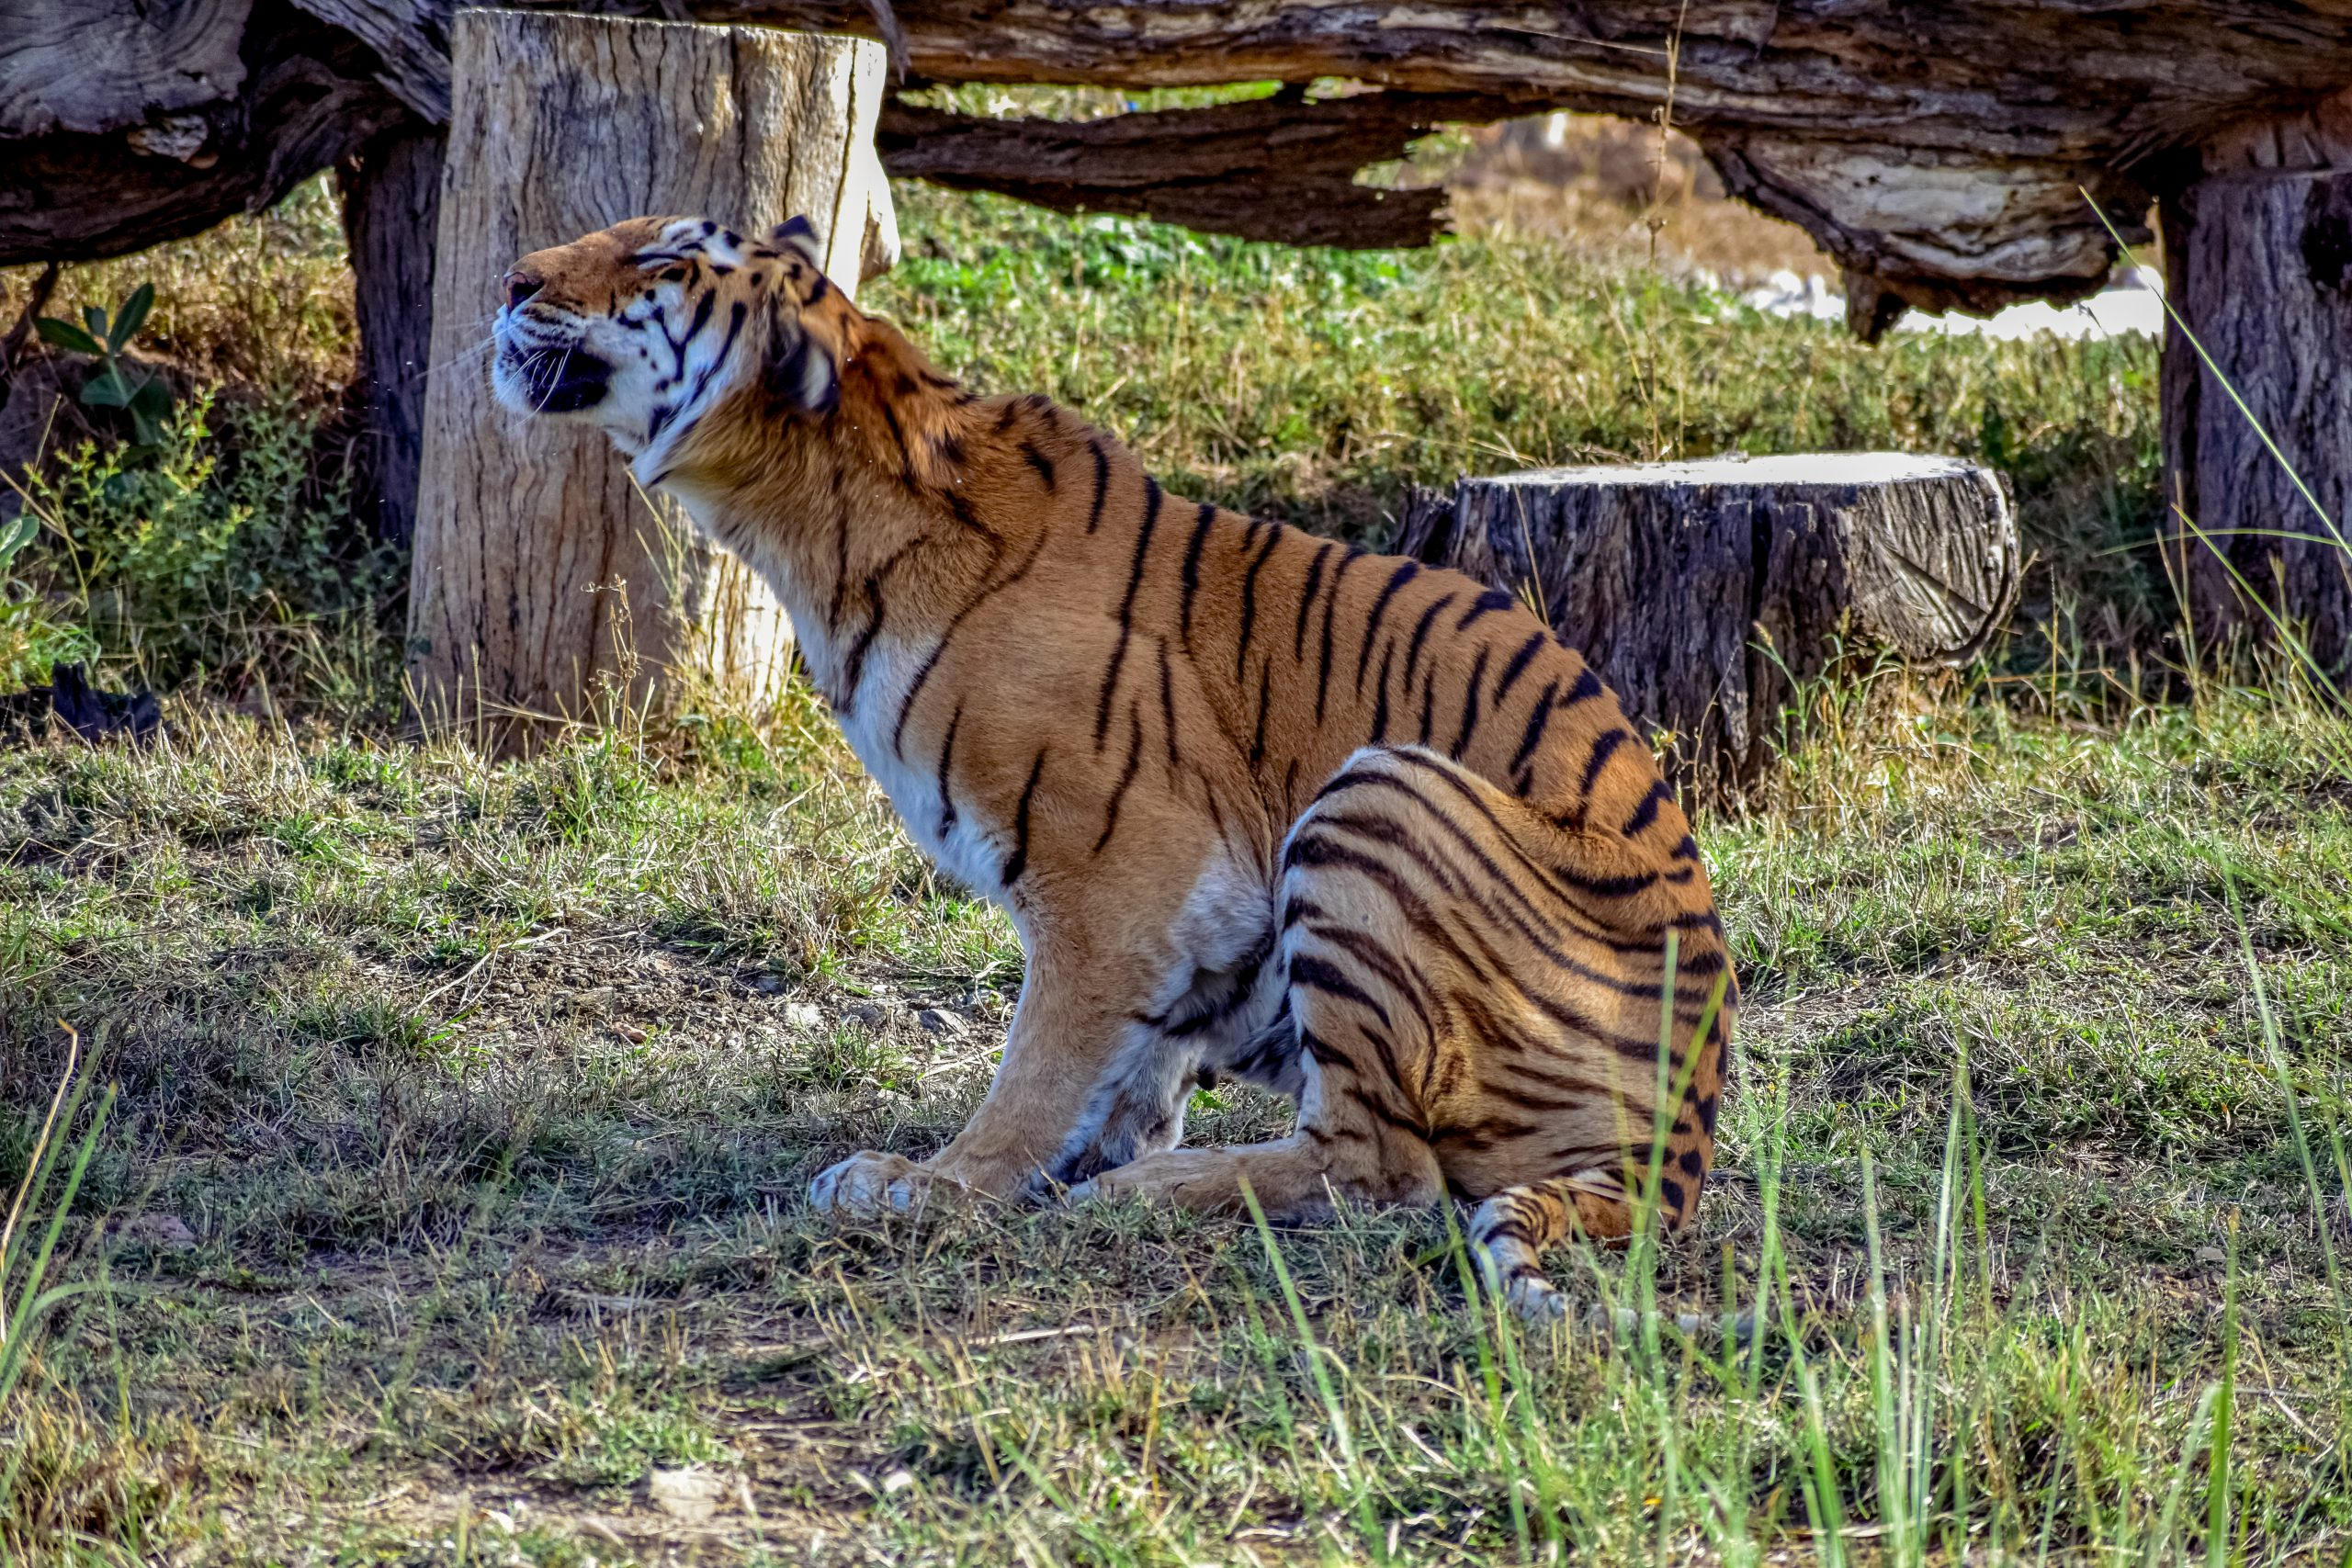 A Bengal tiger in a zoo